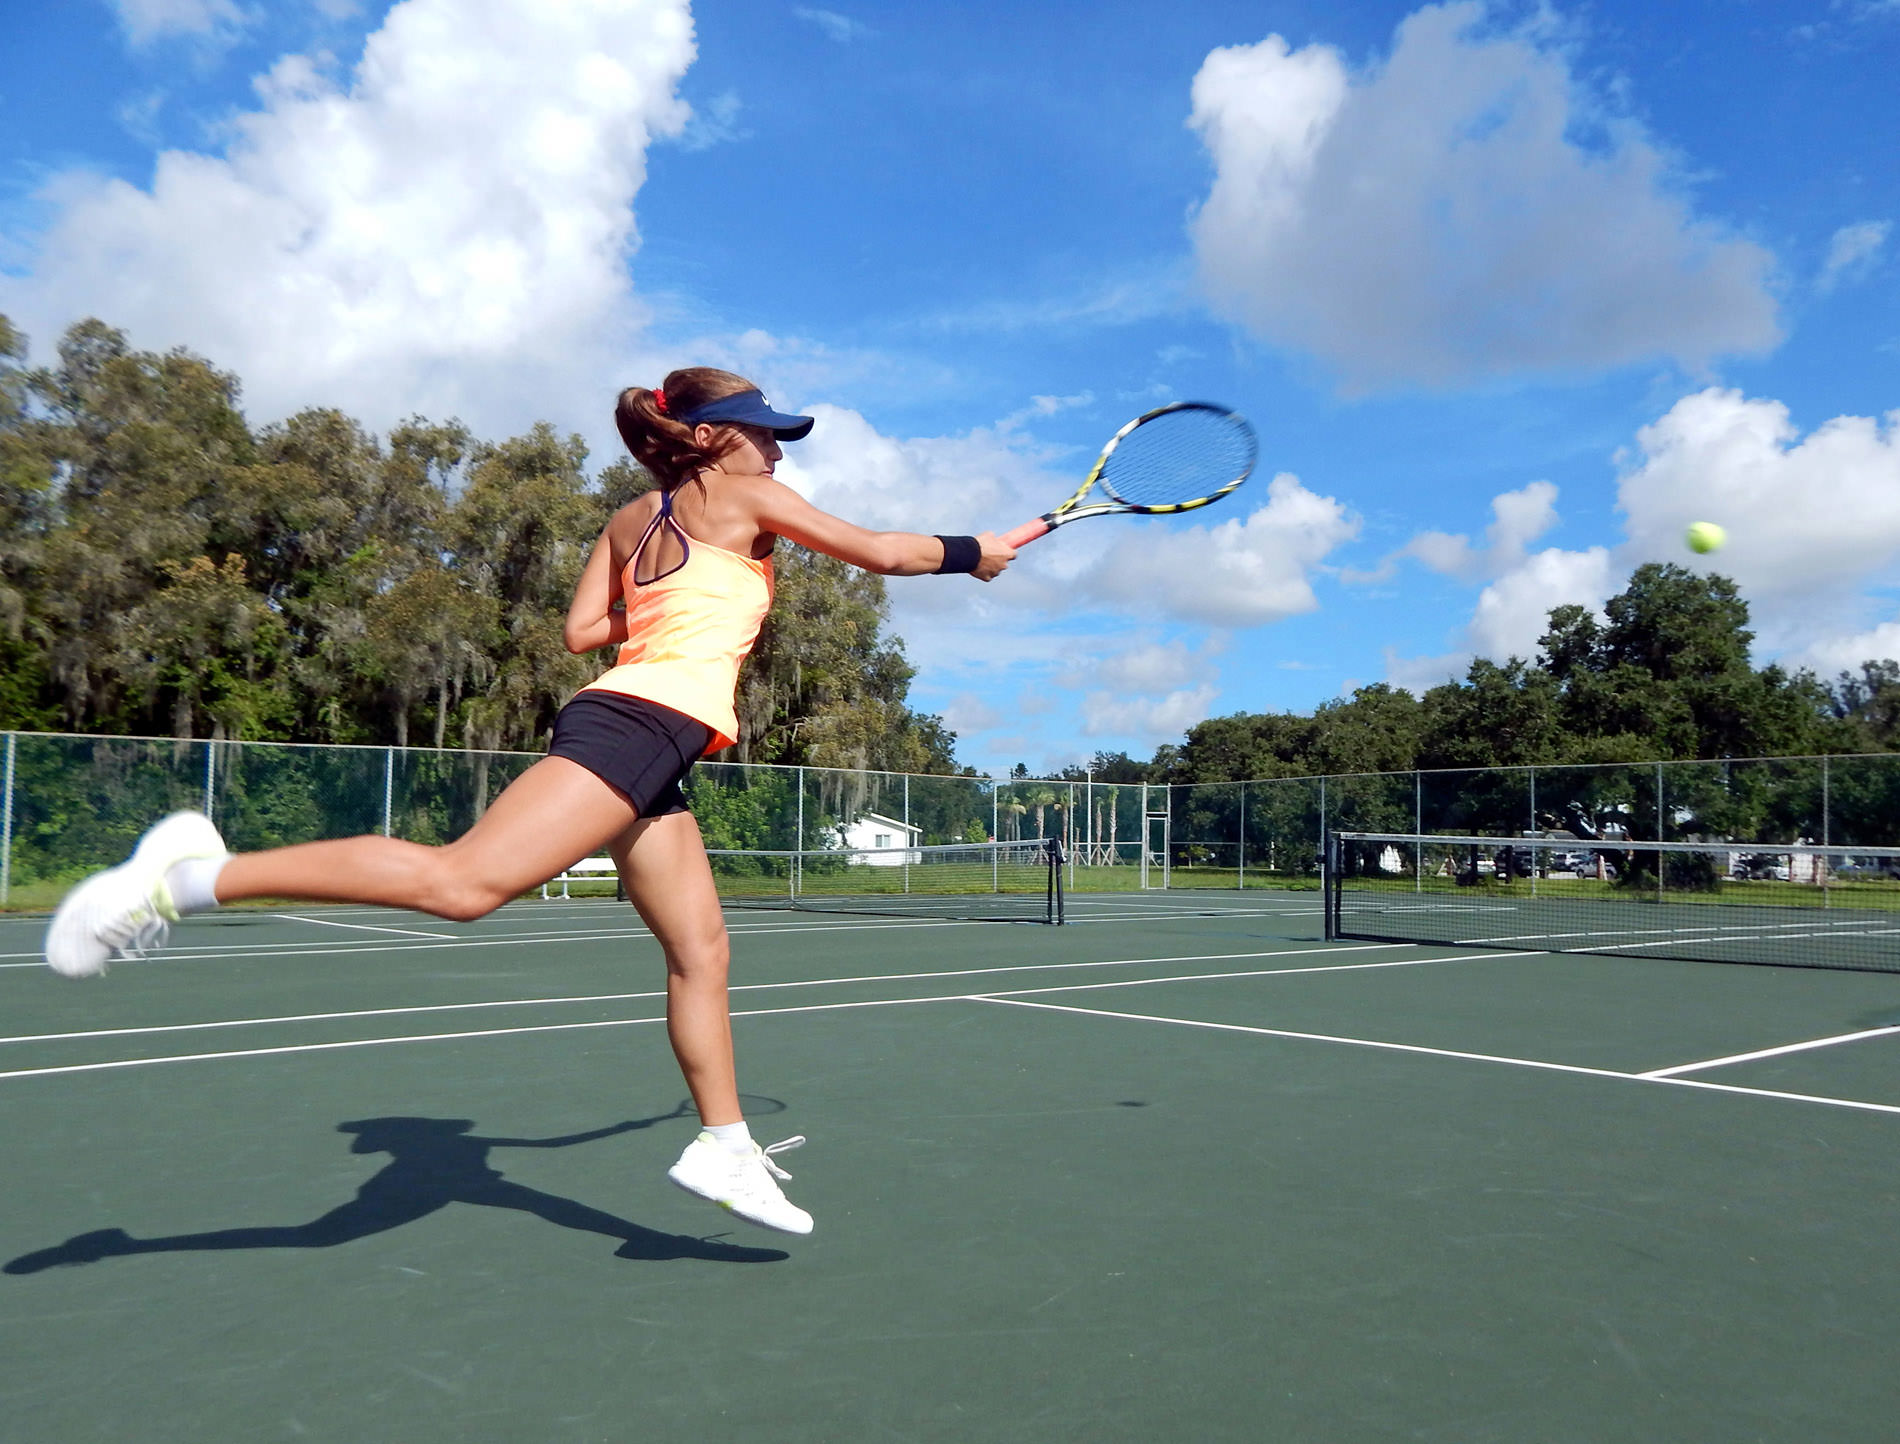 Tennis-Academy-at-Saddlebrook - Busch Garden